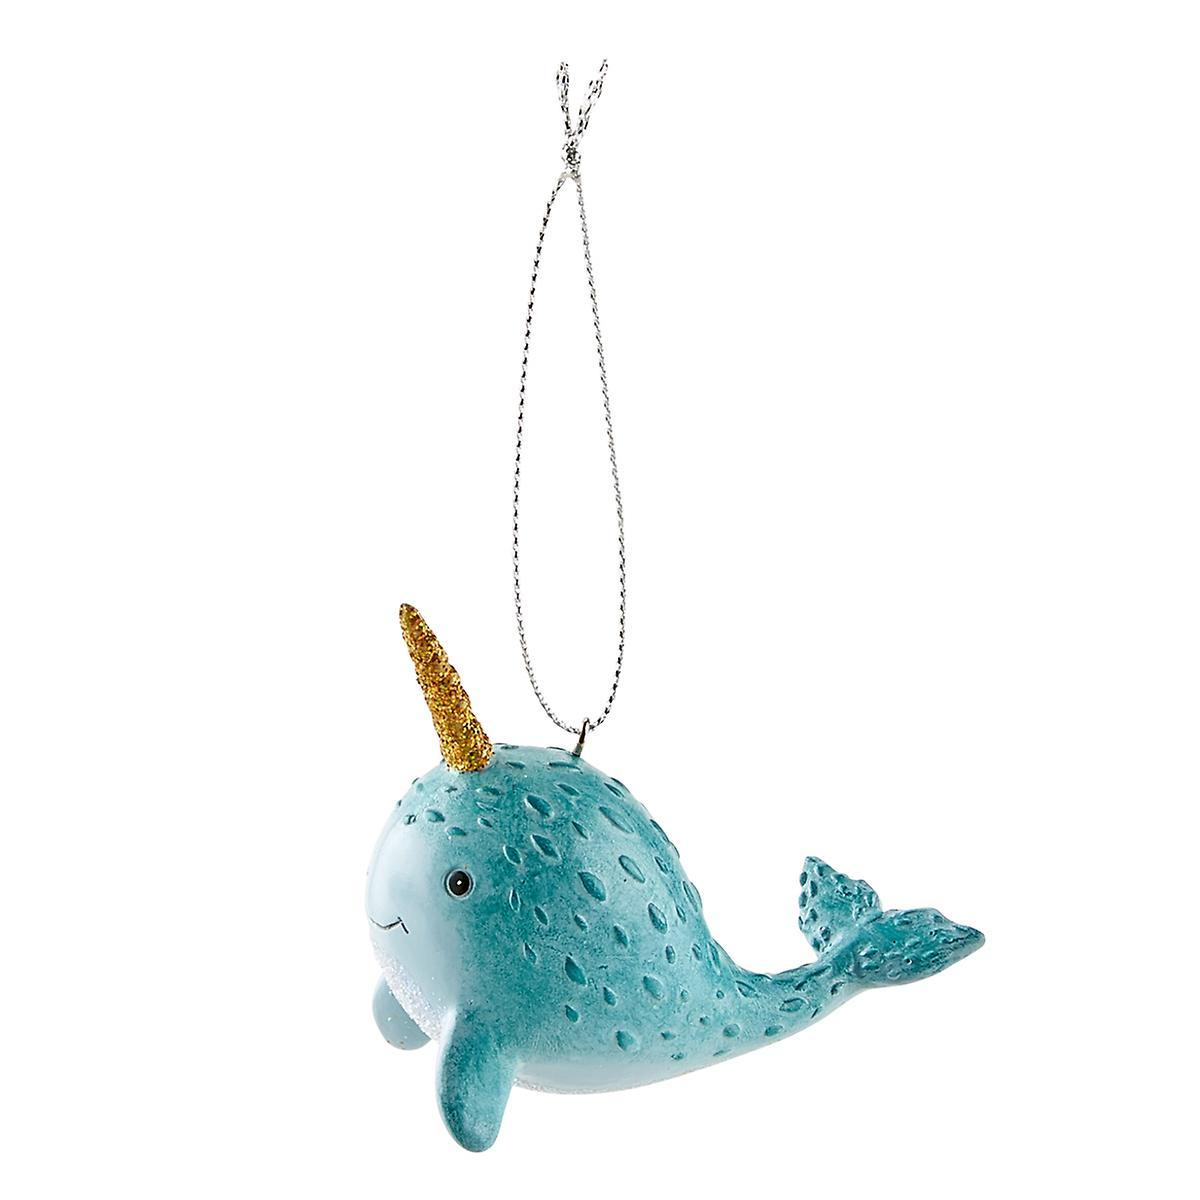 Narwhal Tie-On Ornament